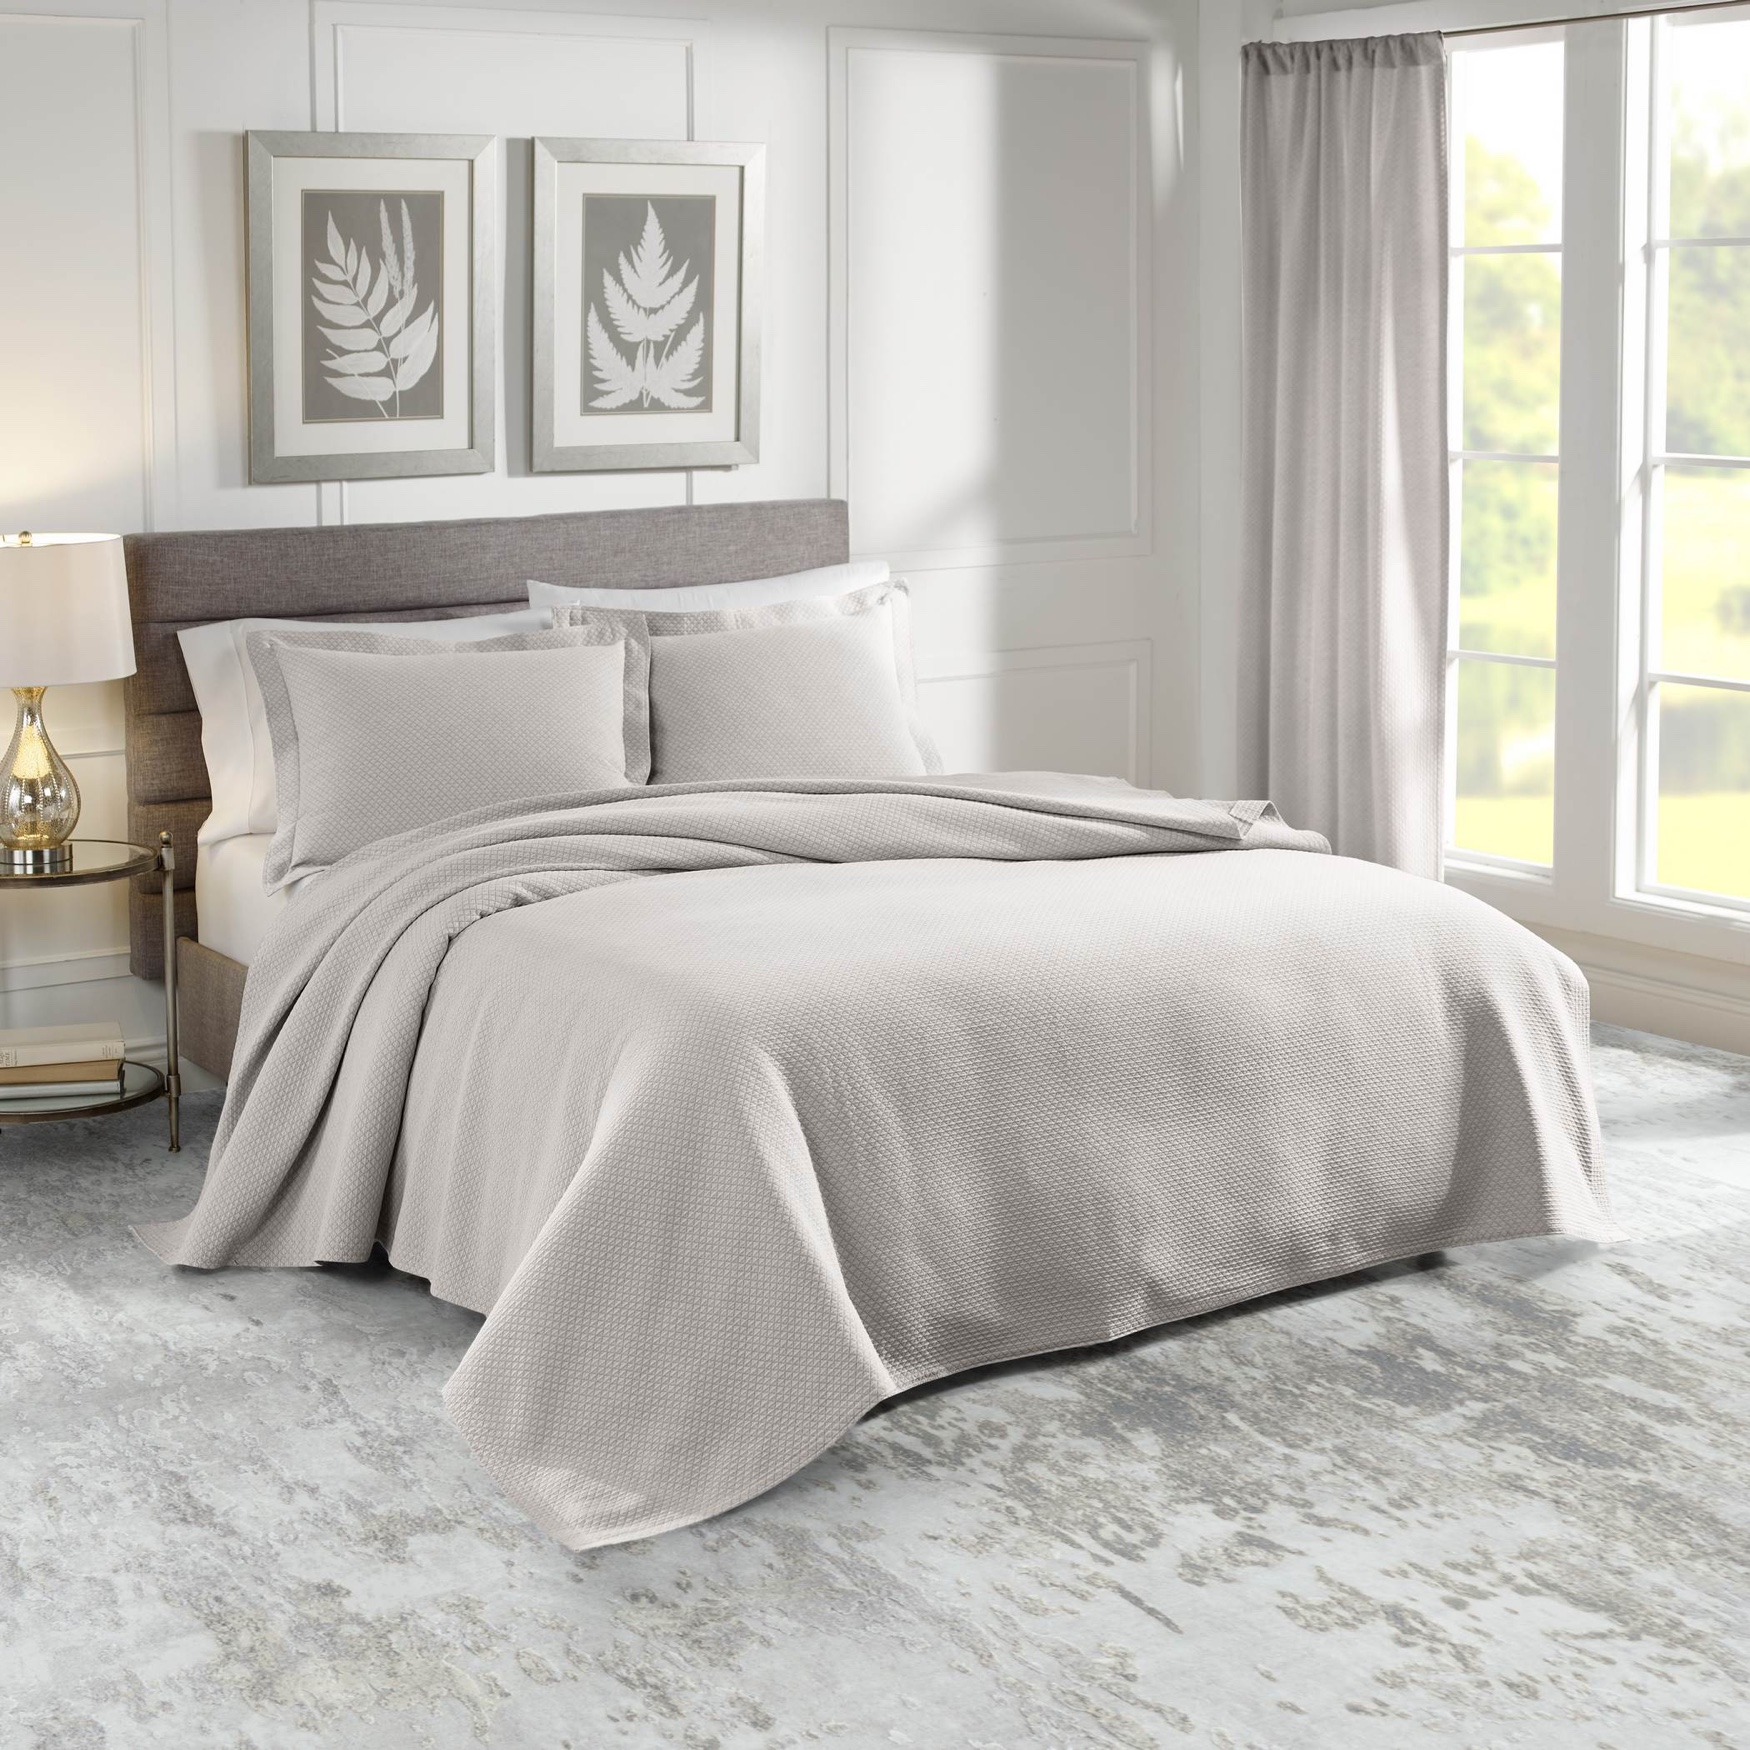 Sunset European Matelassé Coverlet Set,